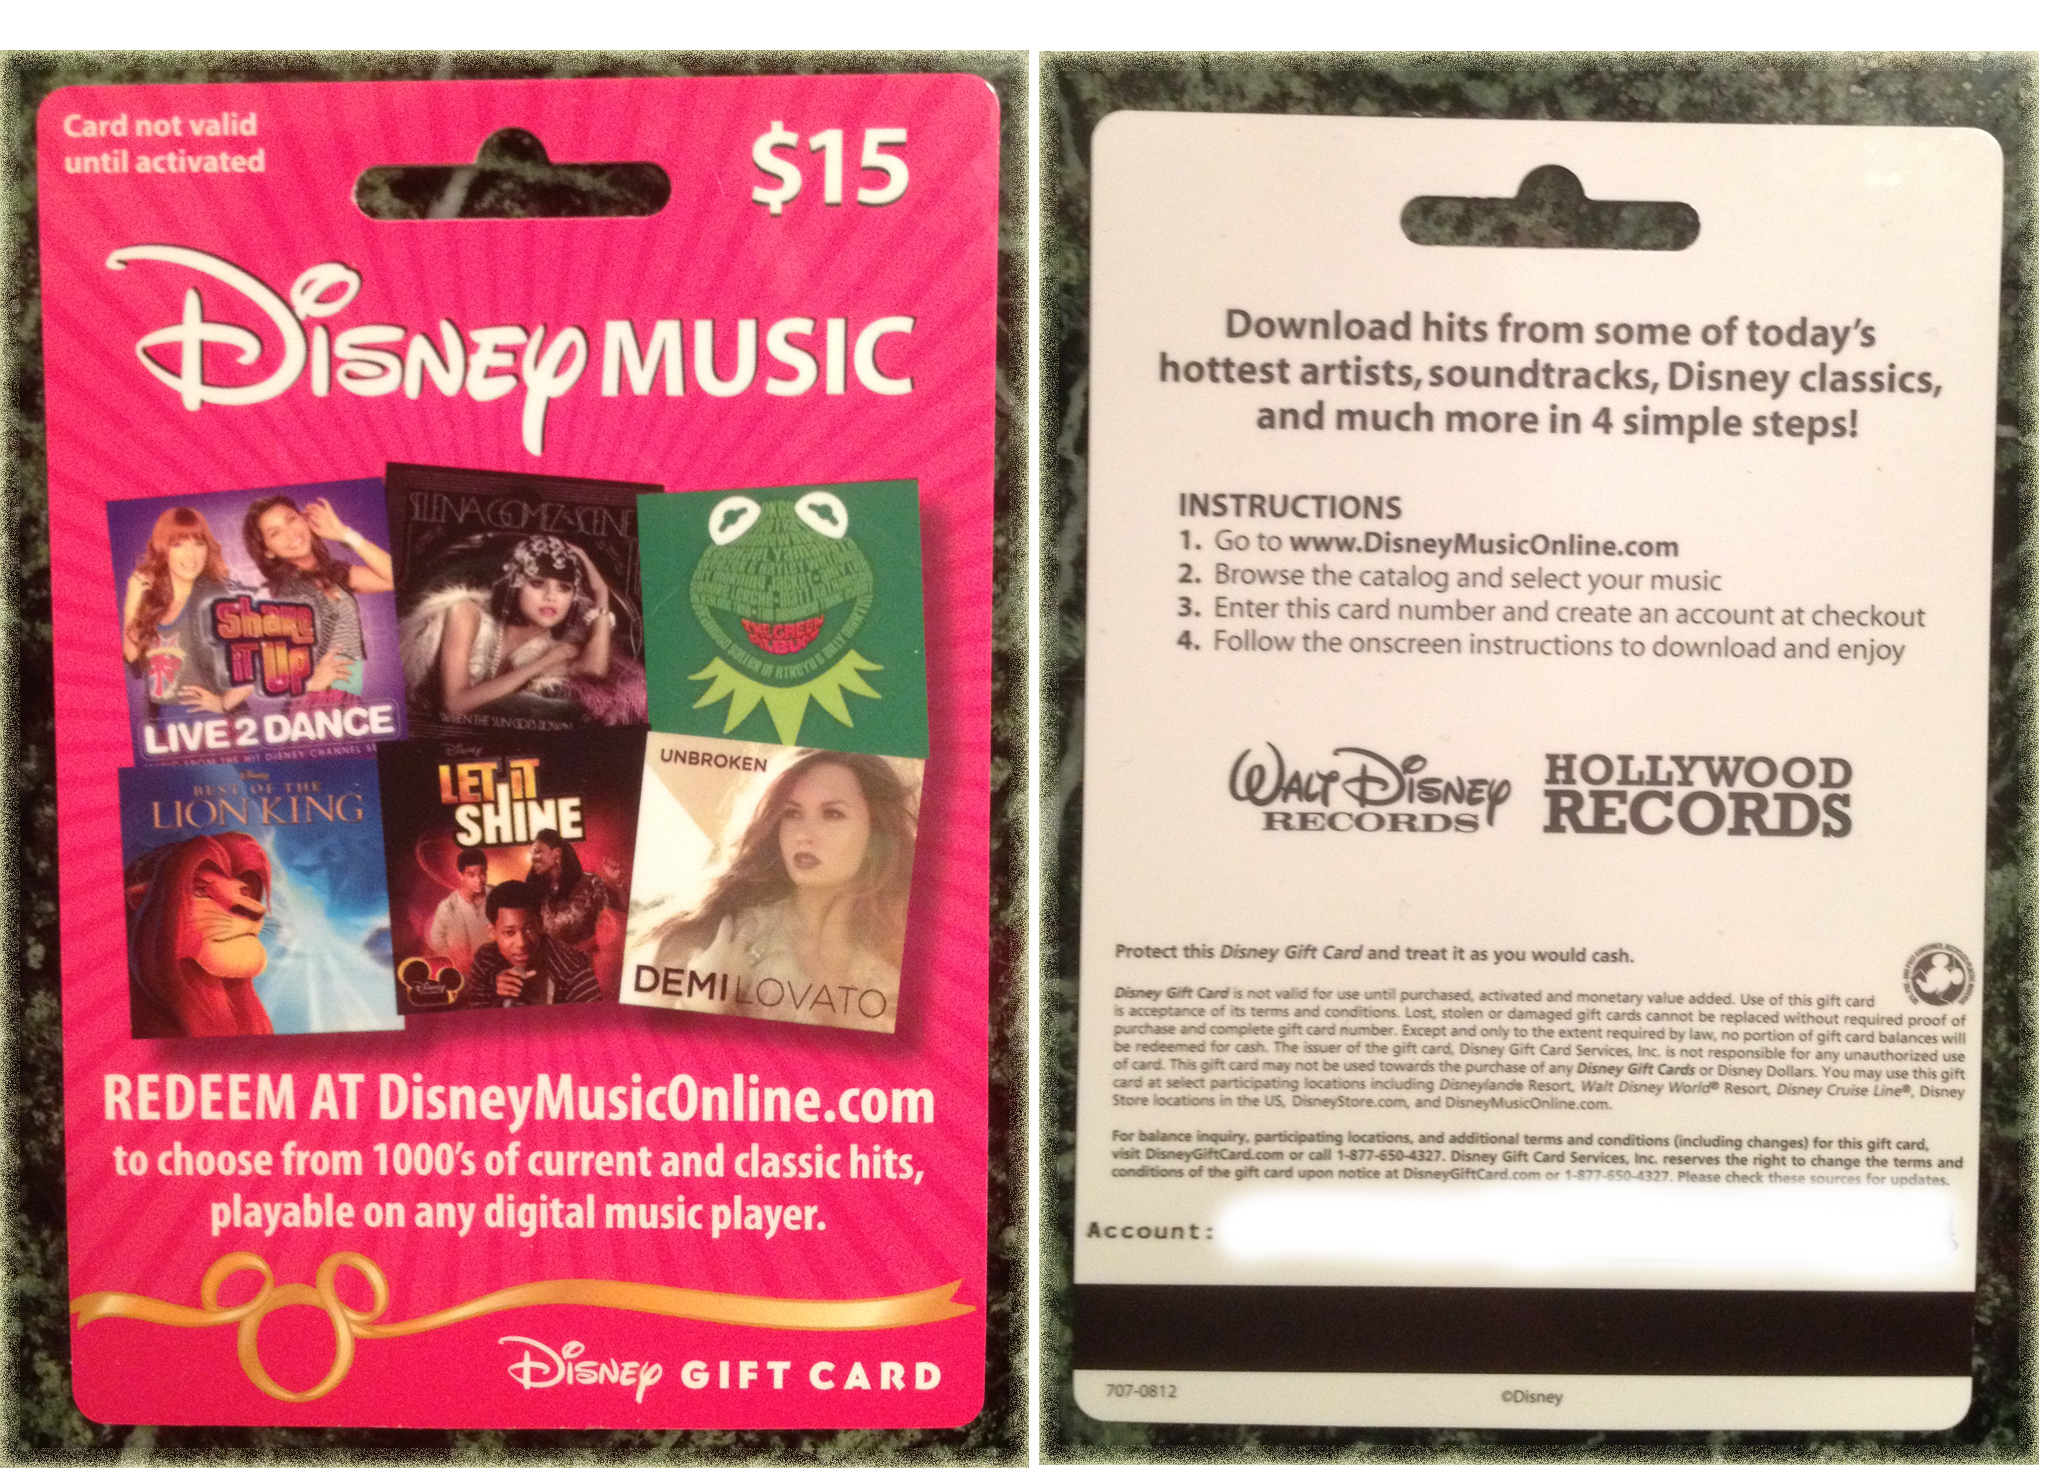 Disney Music Gift Card Makes Shopping Easy Mommys Fabulous Finds